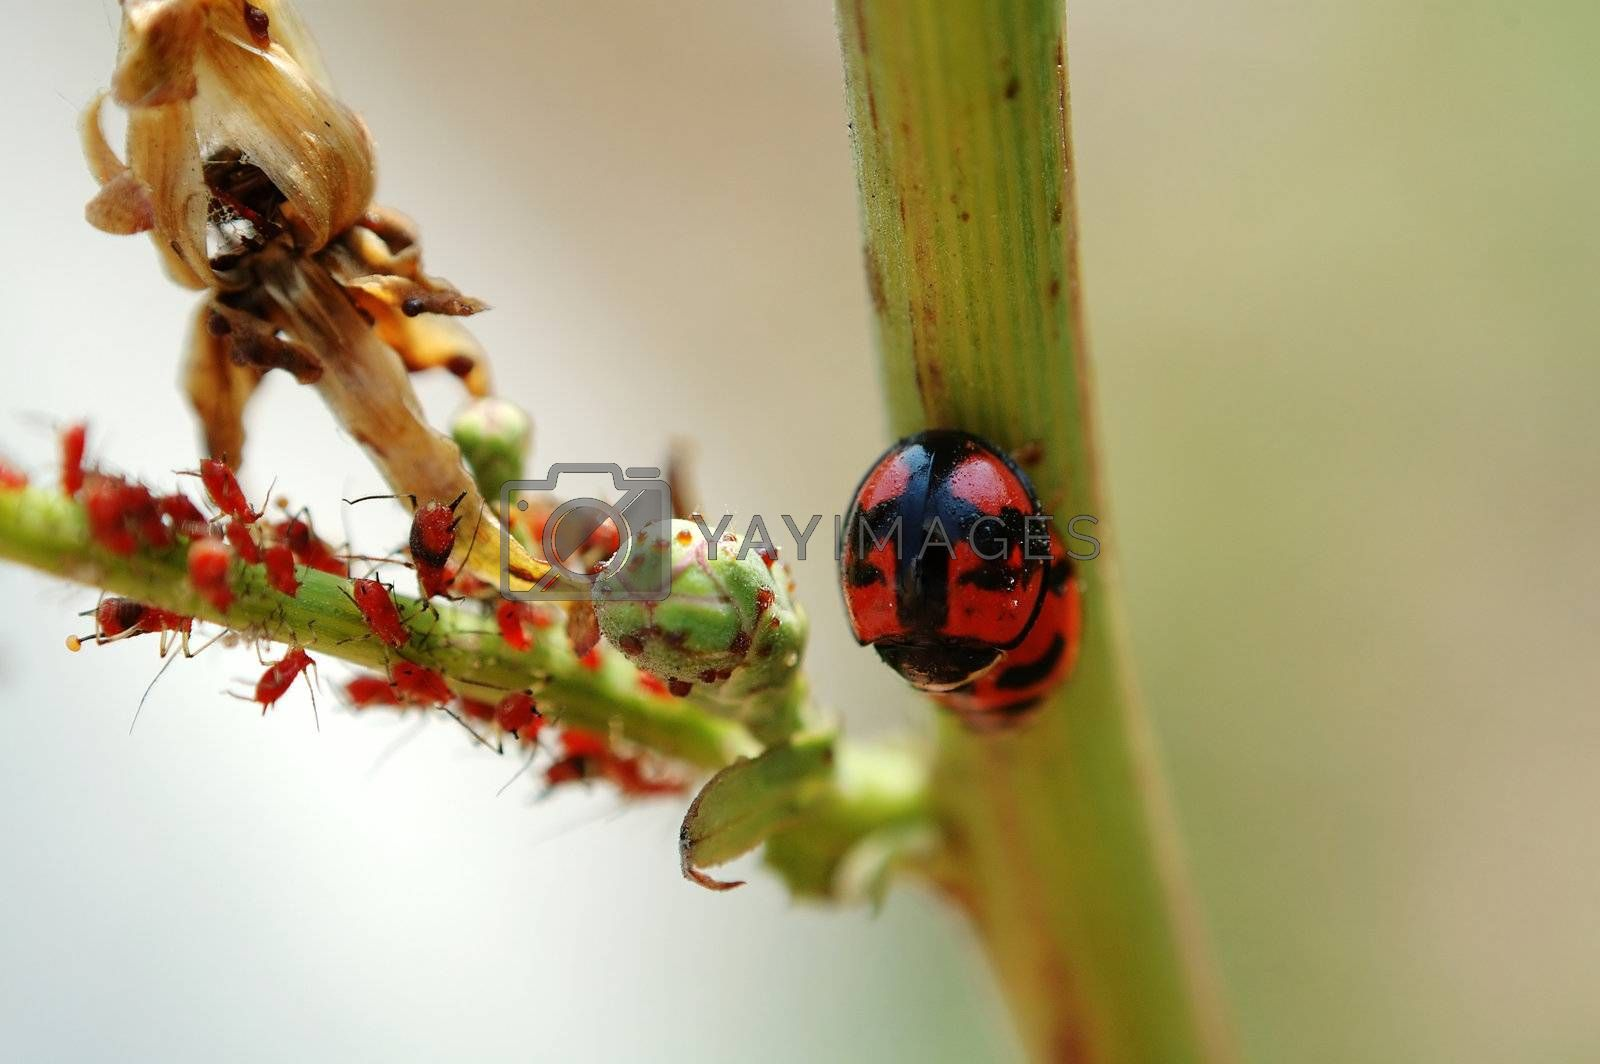 Mating ladybirds and red aphids by tito